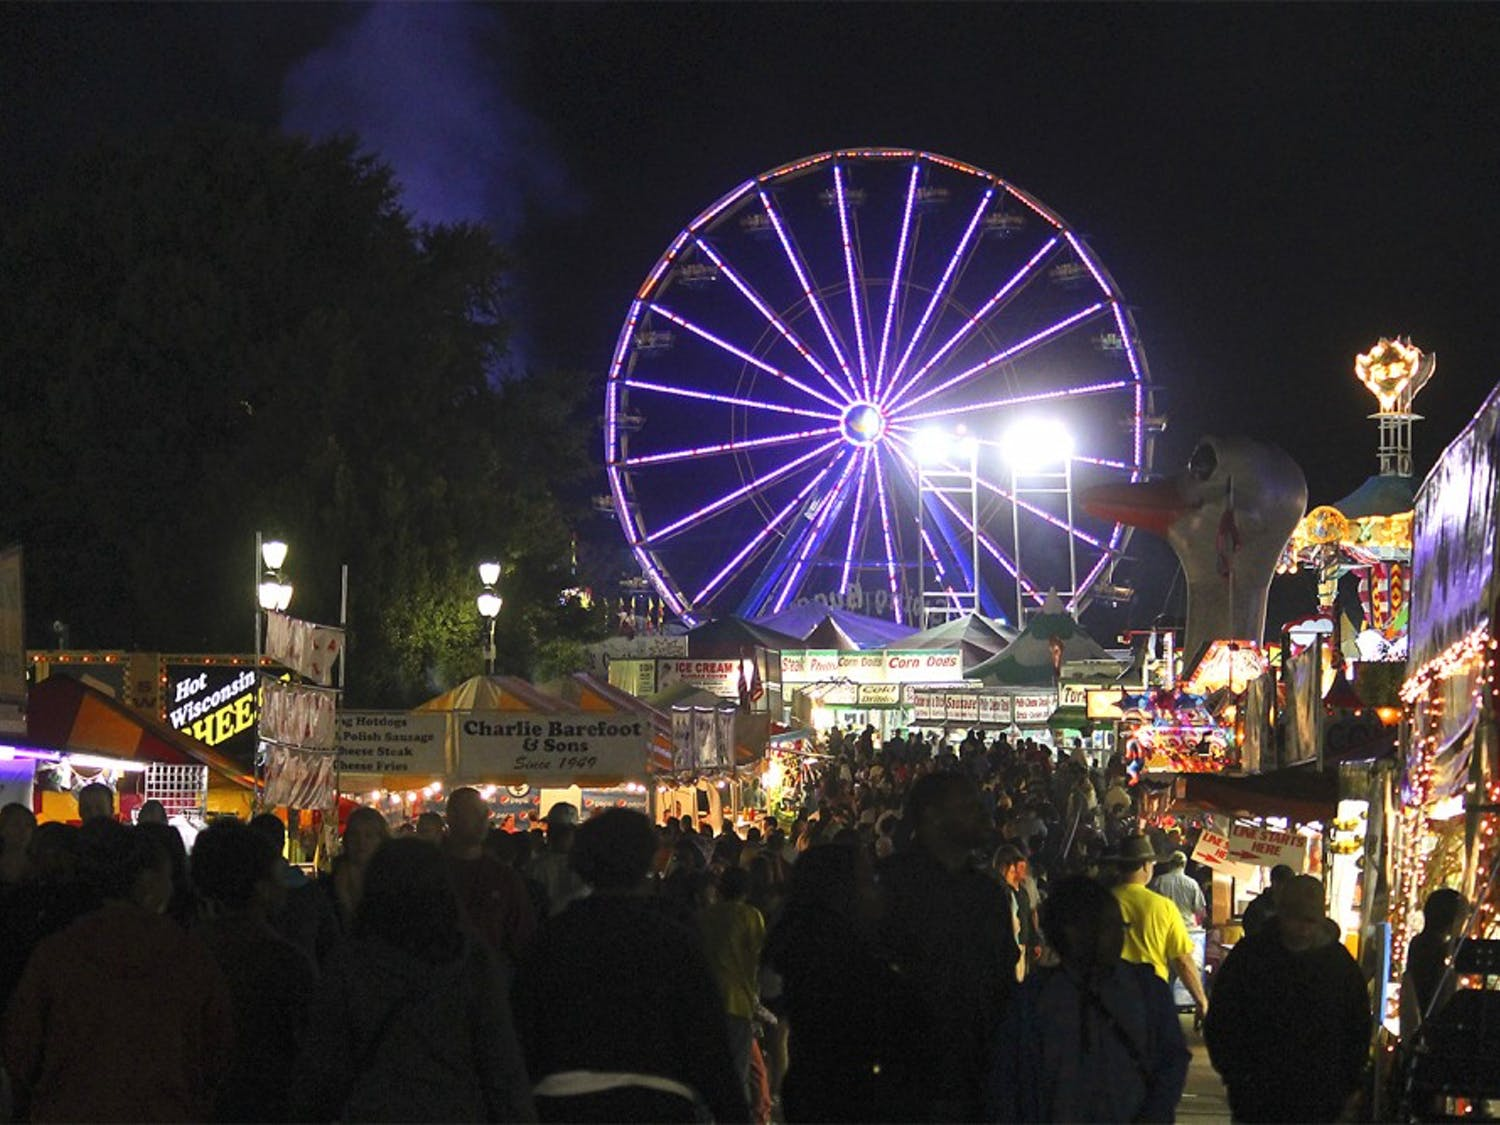 The N.C. State Fair is located on Blue Ridge Road in Raleigh and will be open until October 26th.